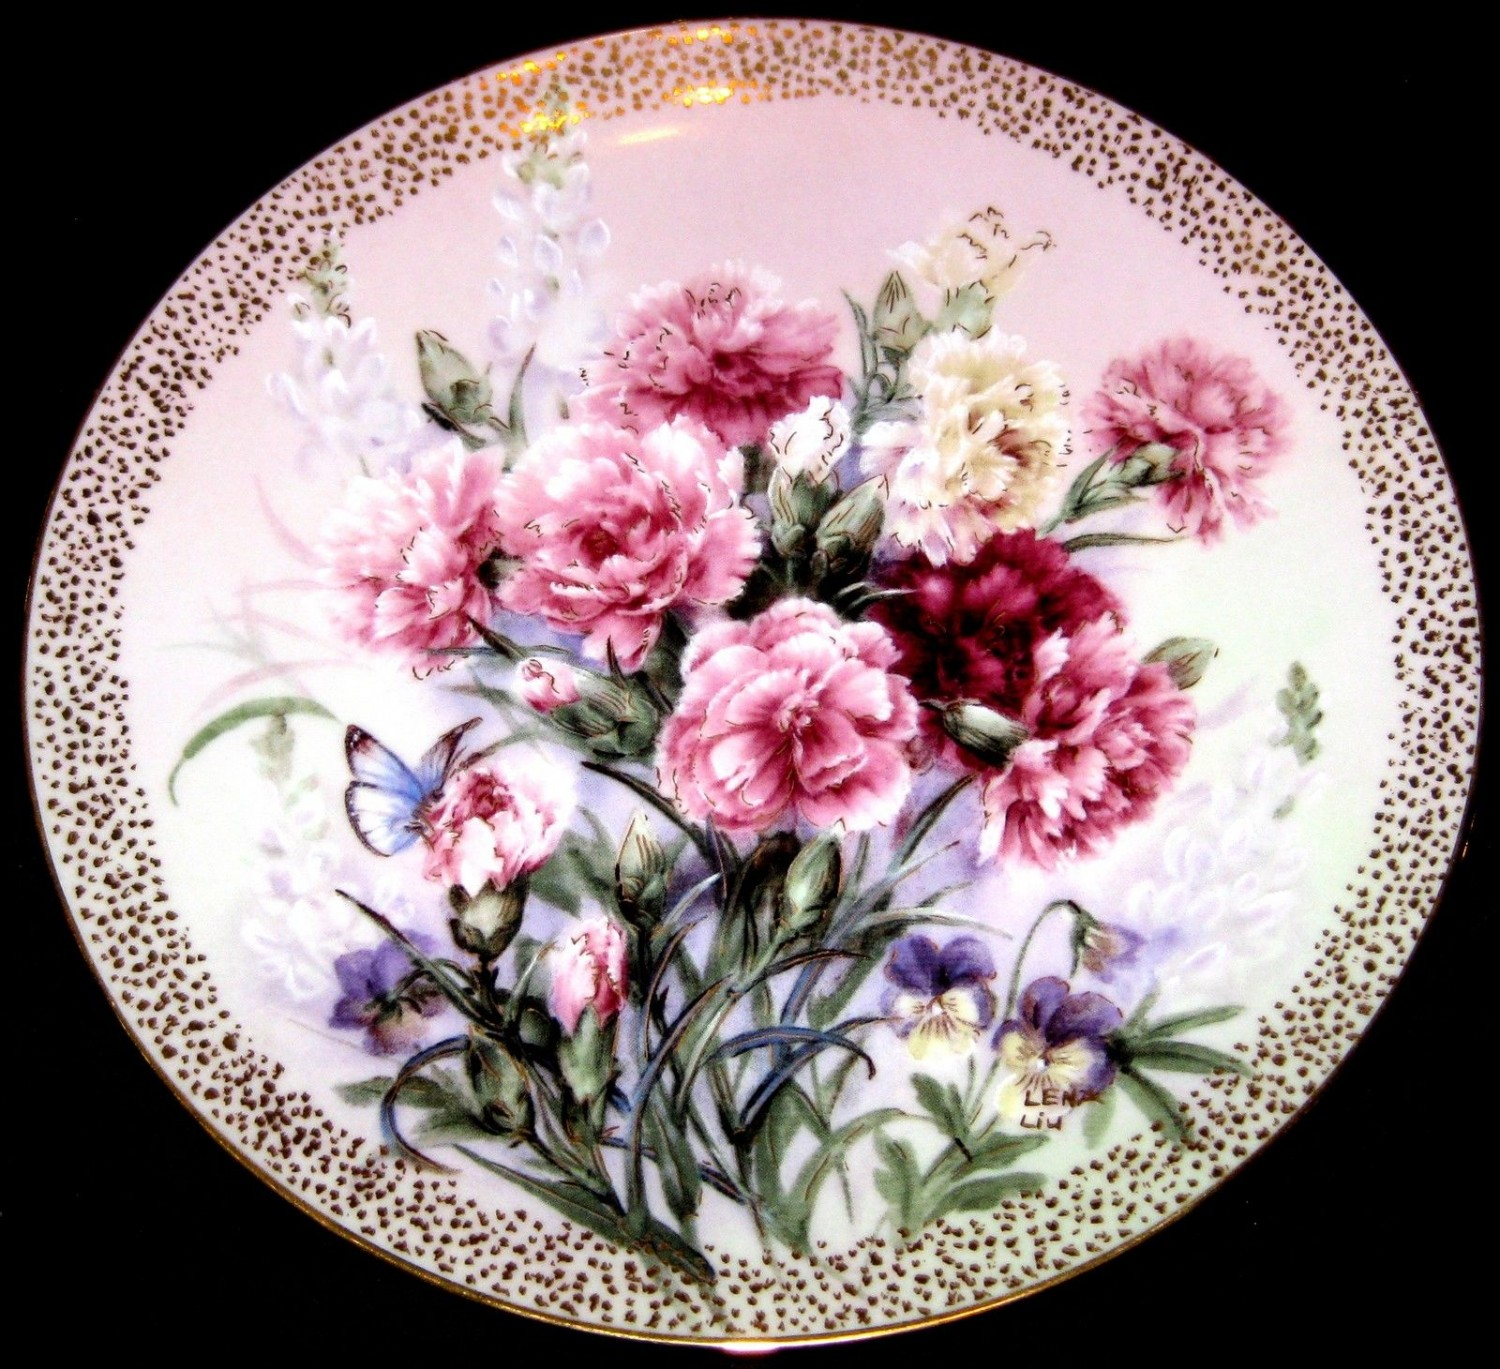 Carnation Serenade by Lena Liu /Symphony of Shimmering Beauty 1992-Plate # 4022A